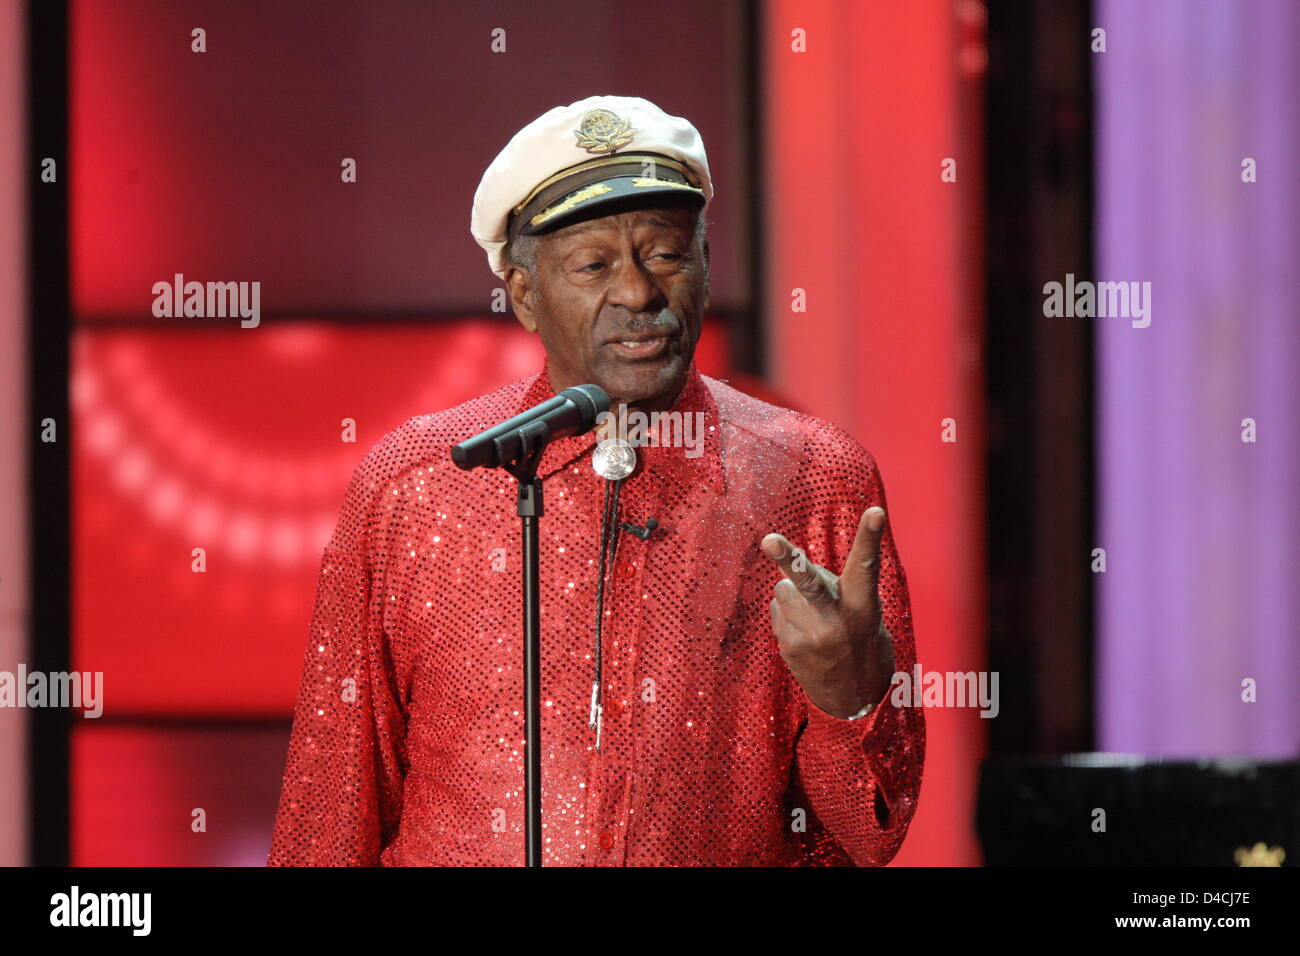 US music legend Chuck Berry delivers a speech at the 43rd 'Goldene Kamera' Awards in Berlin, Germany, 06 - Stock Image